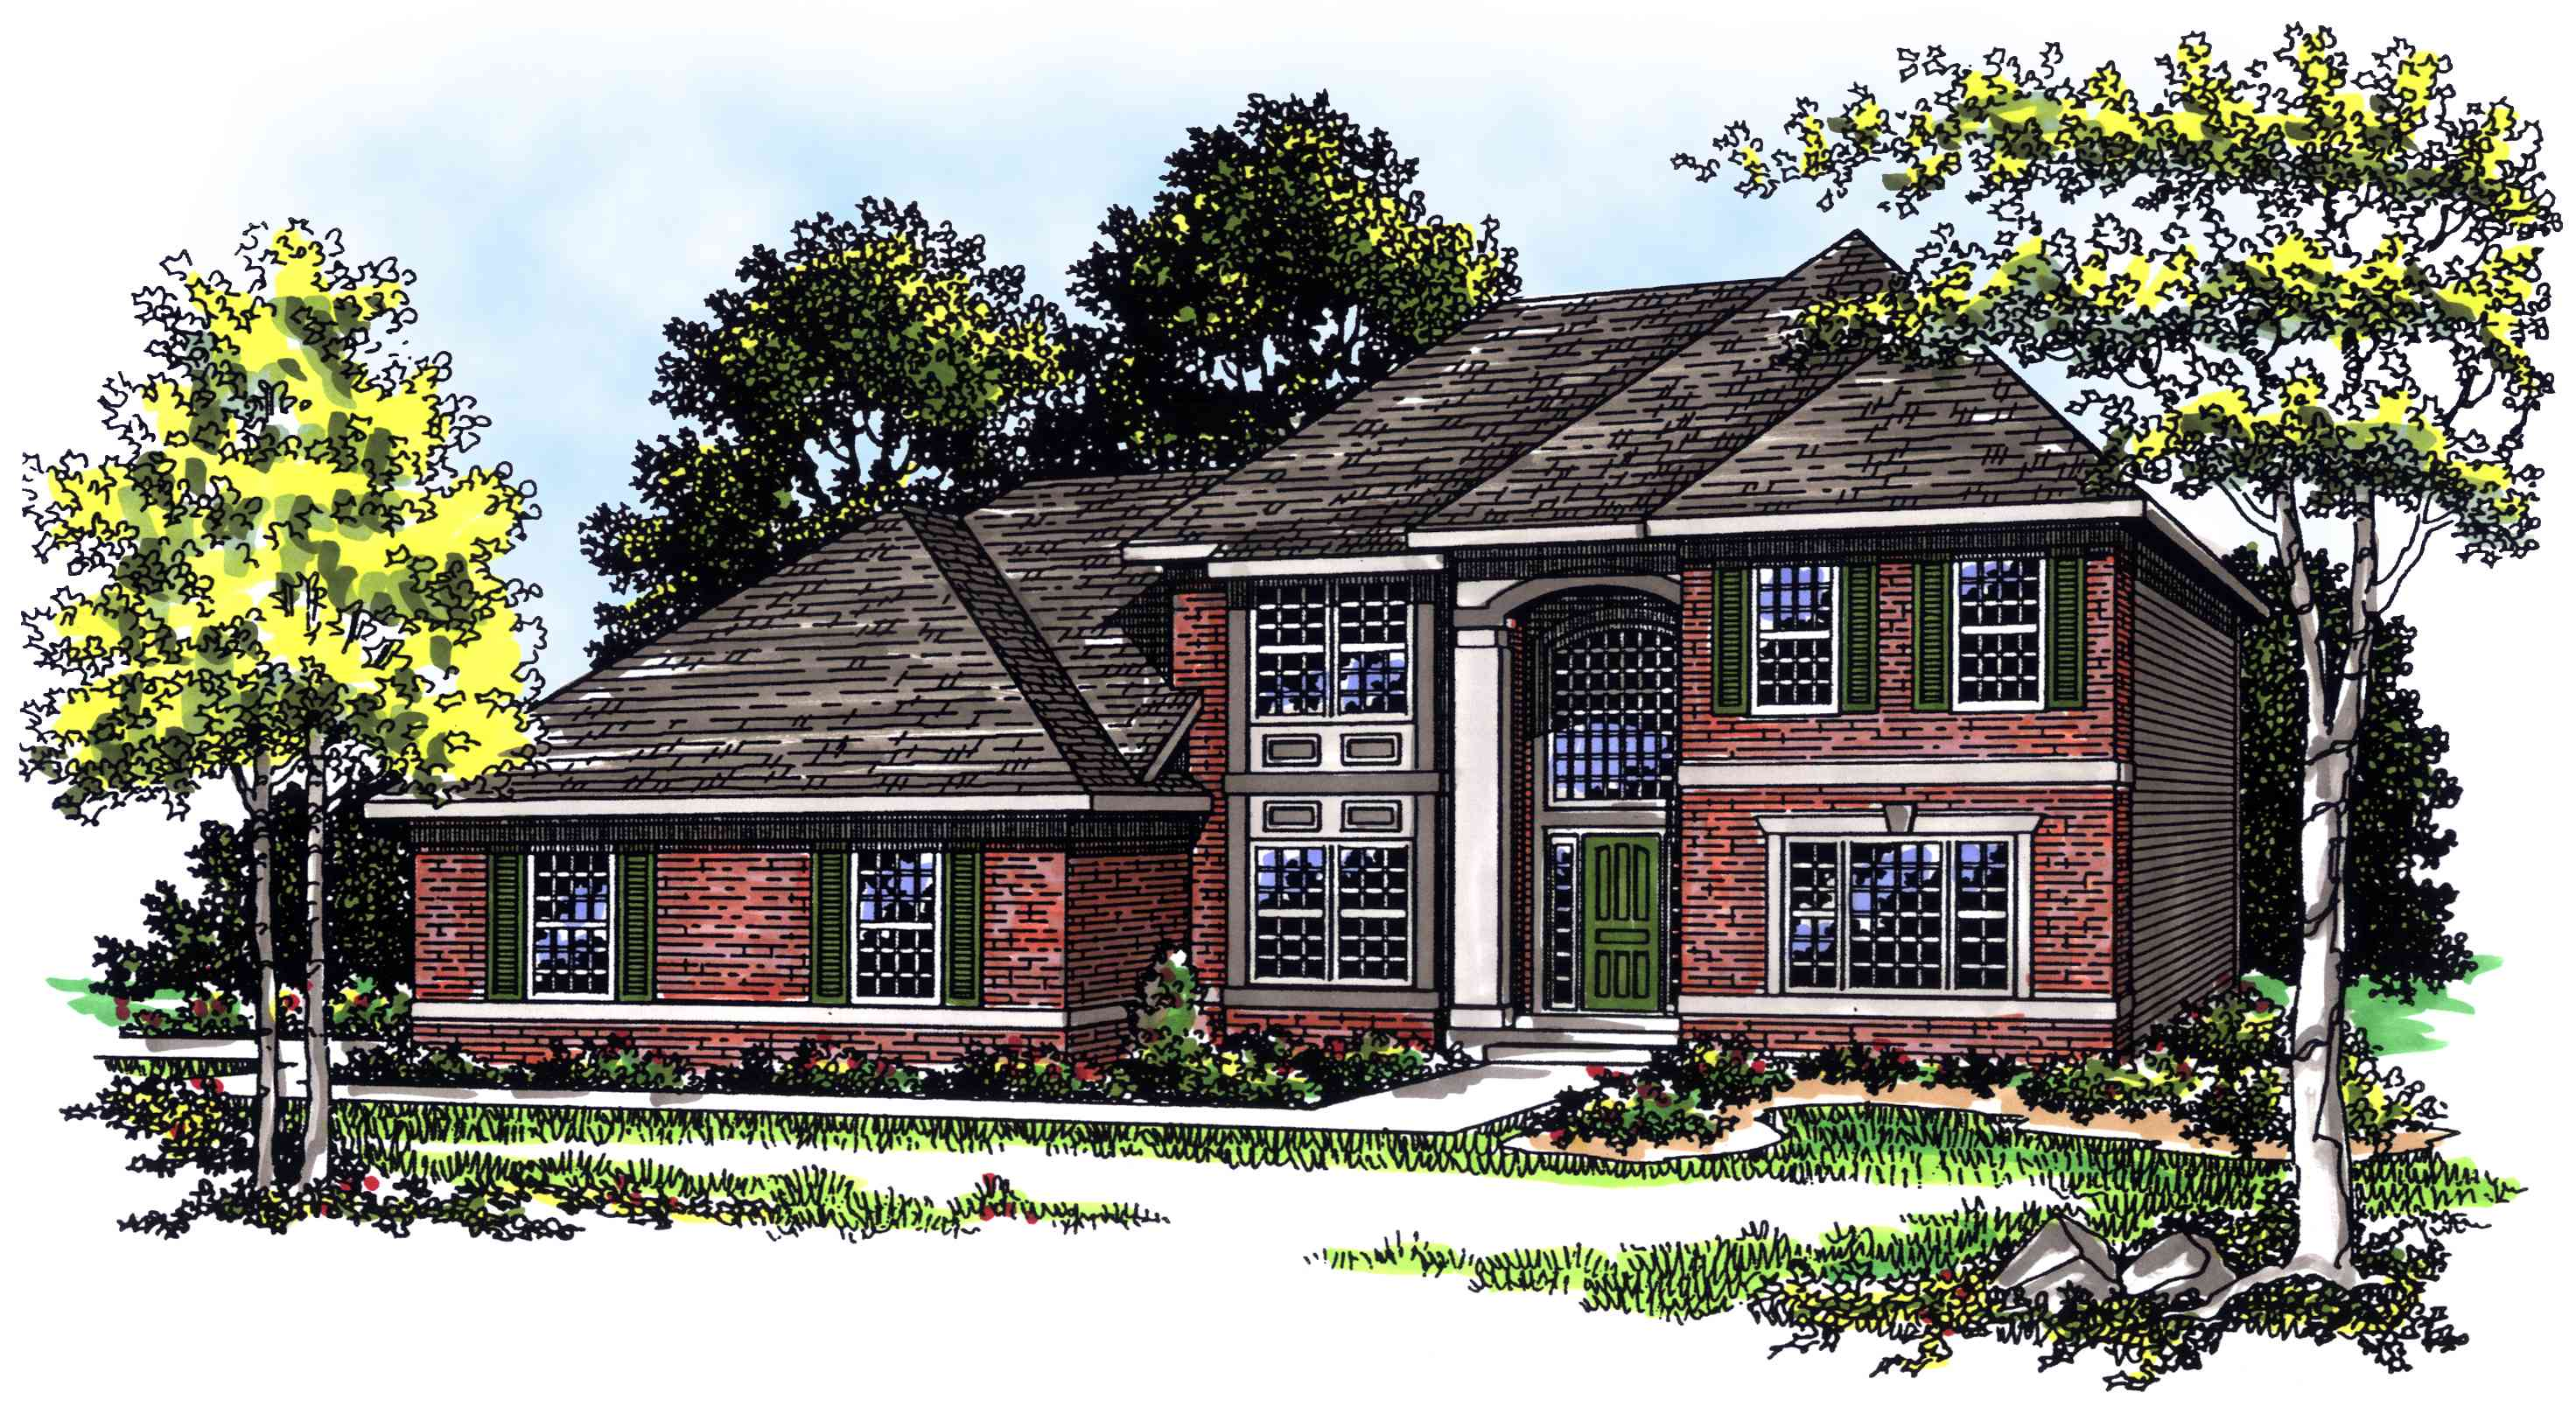 Functional 2 story 3 bedroom house plan 89537ah Functional house plans